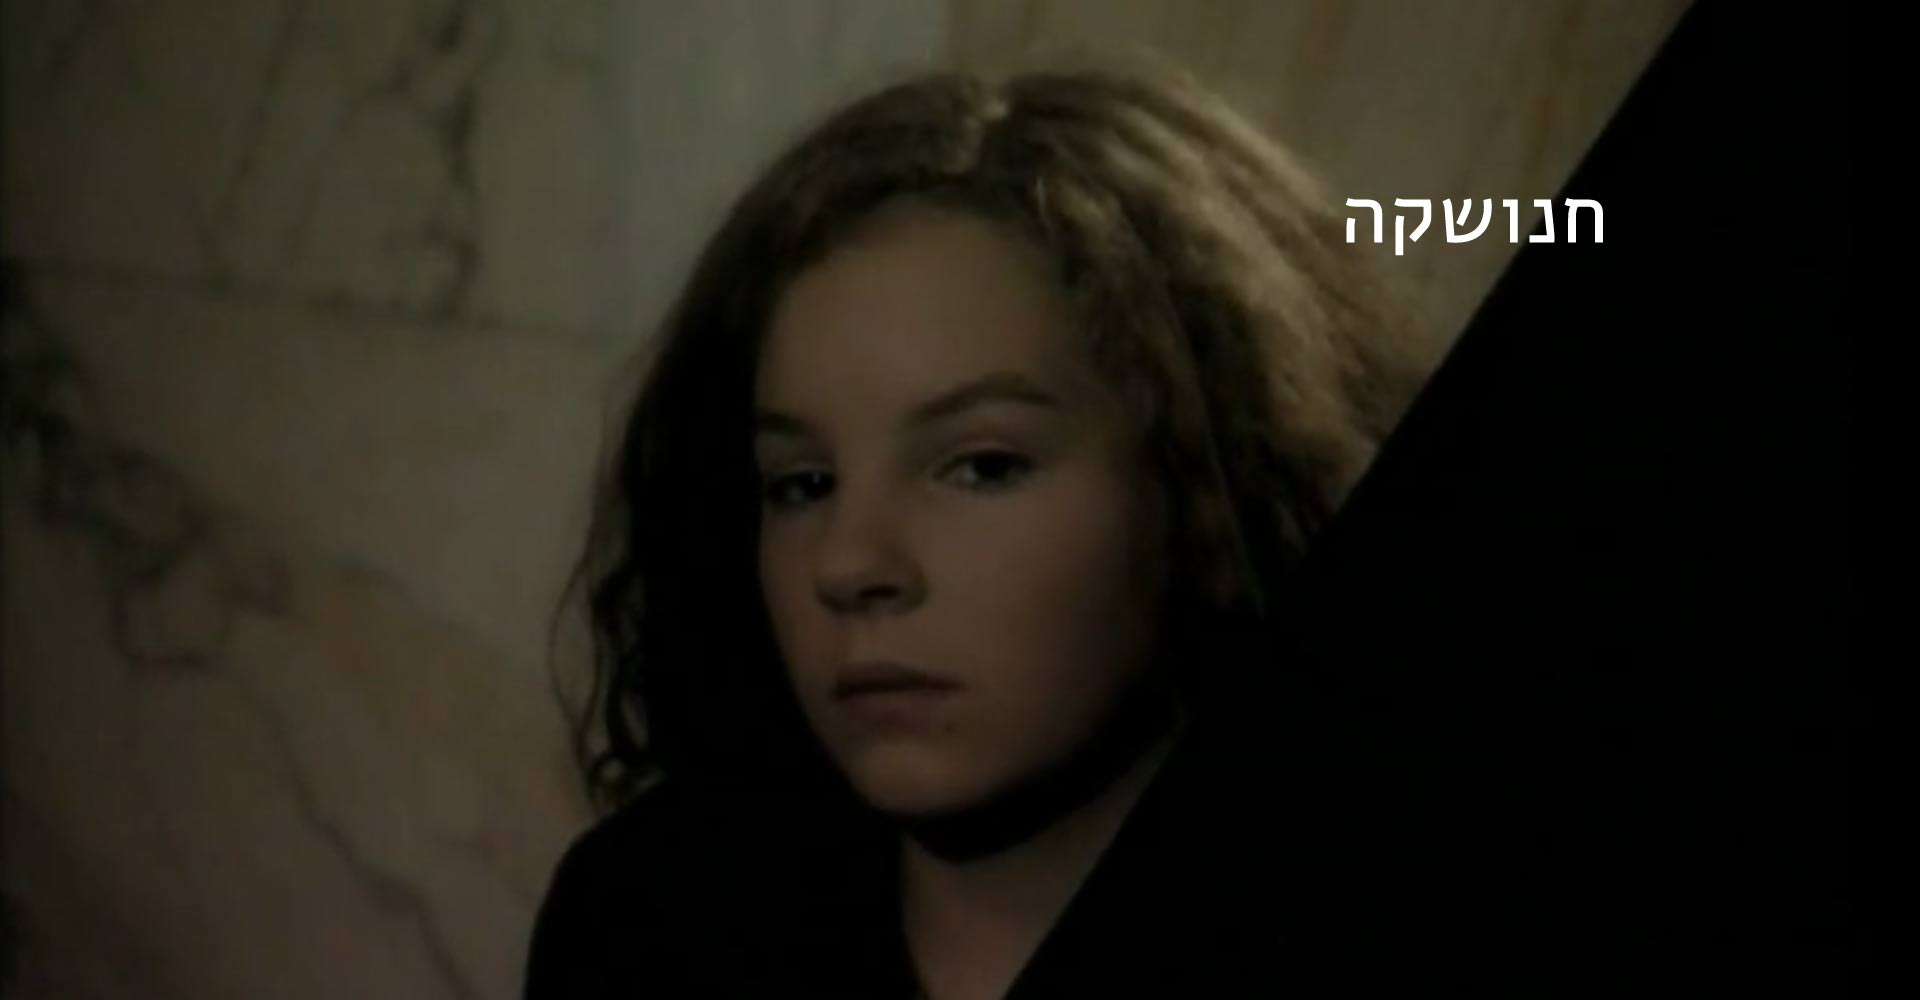 Watch Full Movie - חנושקה